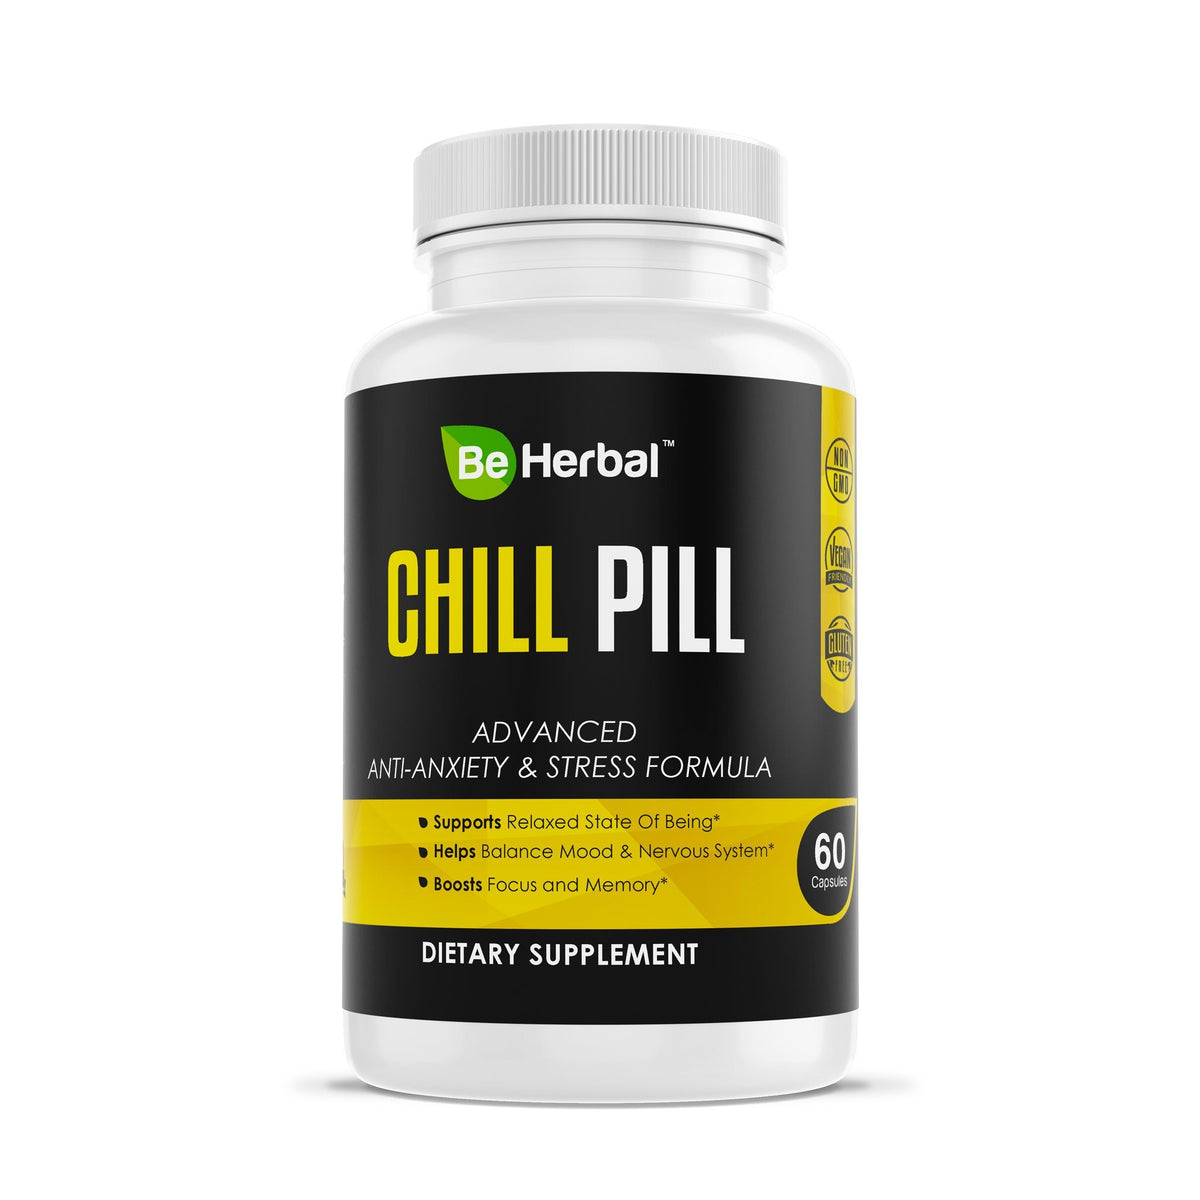 Chill Pill - Advanced Anti Anxiety Formula Herbal Supplements Be Herbal®